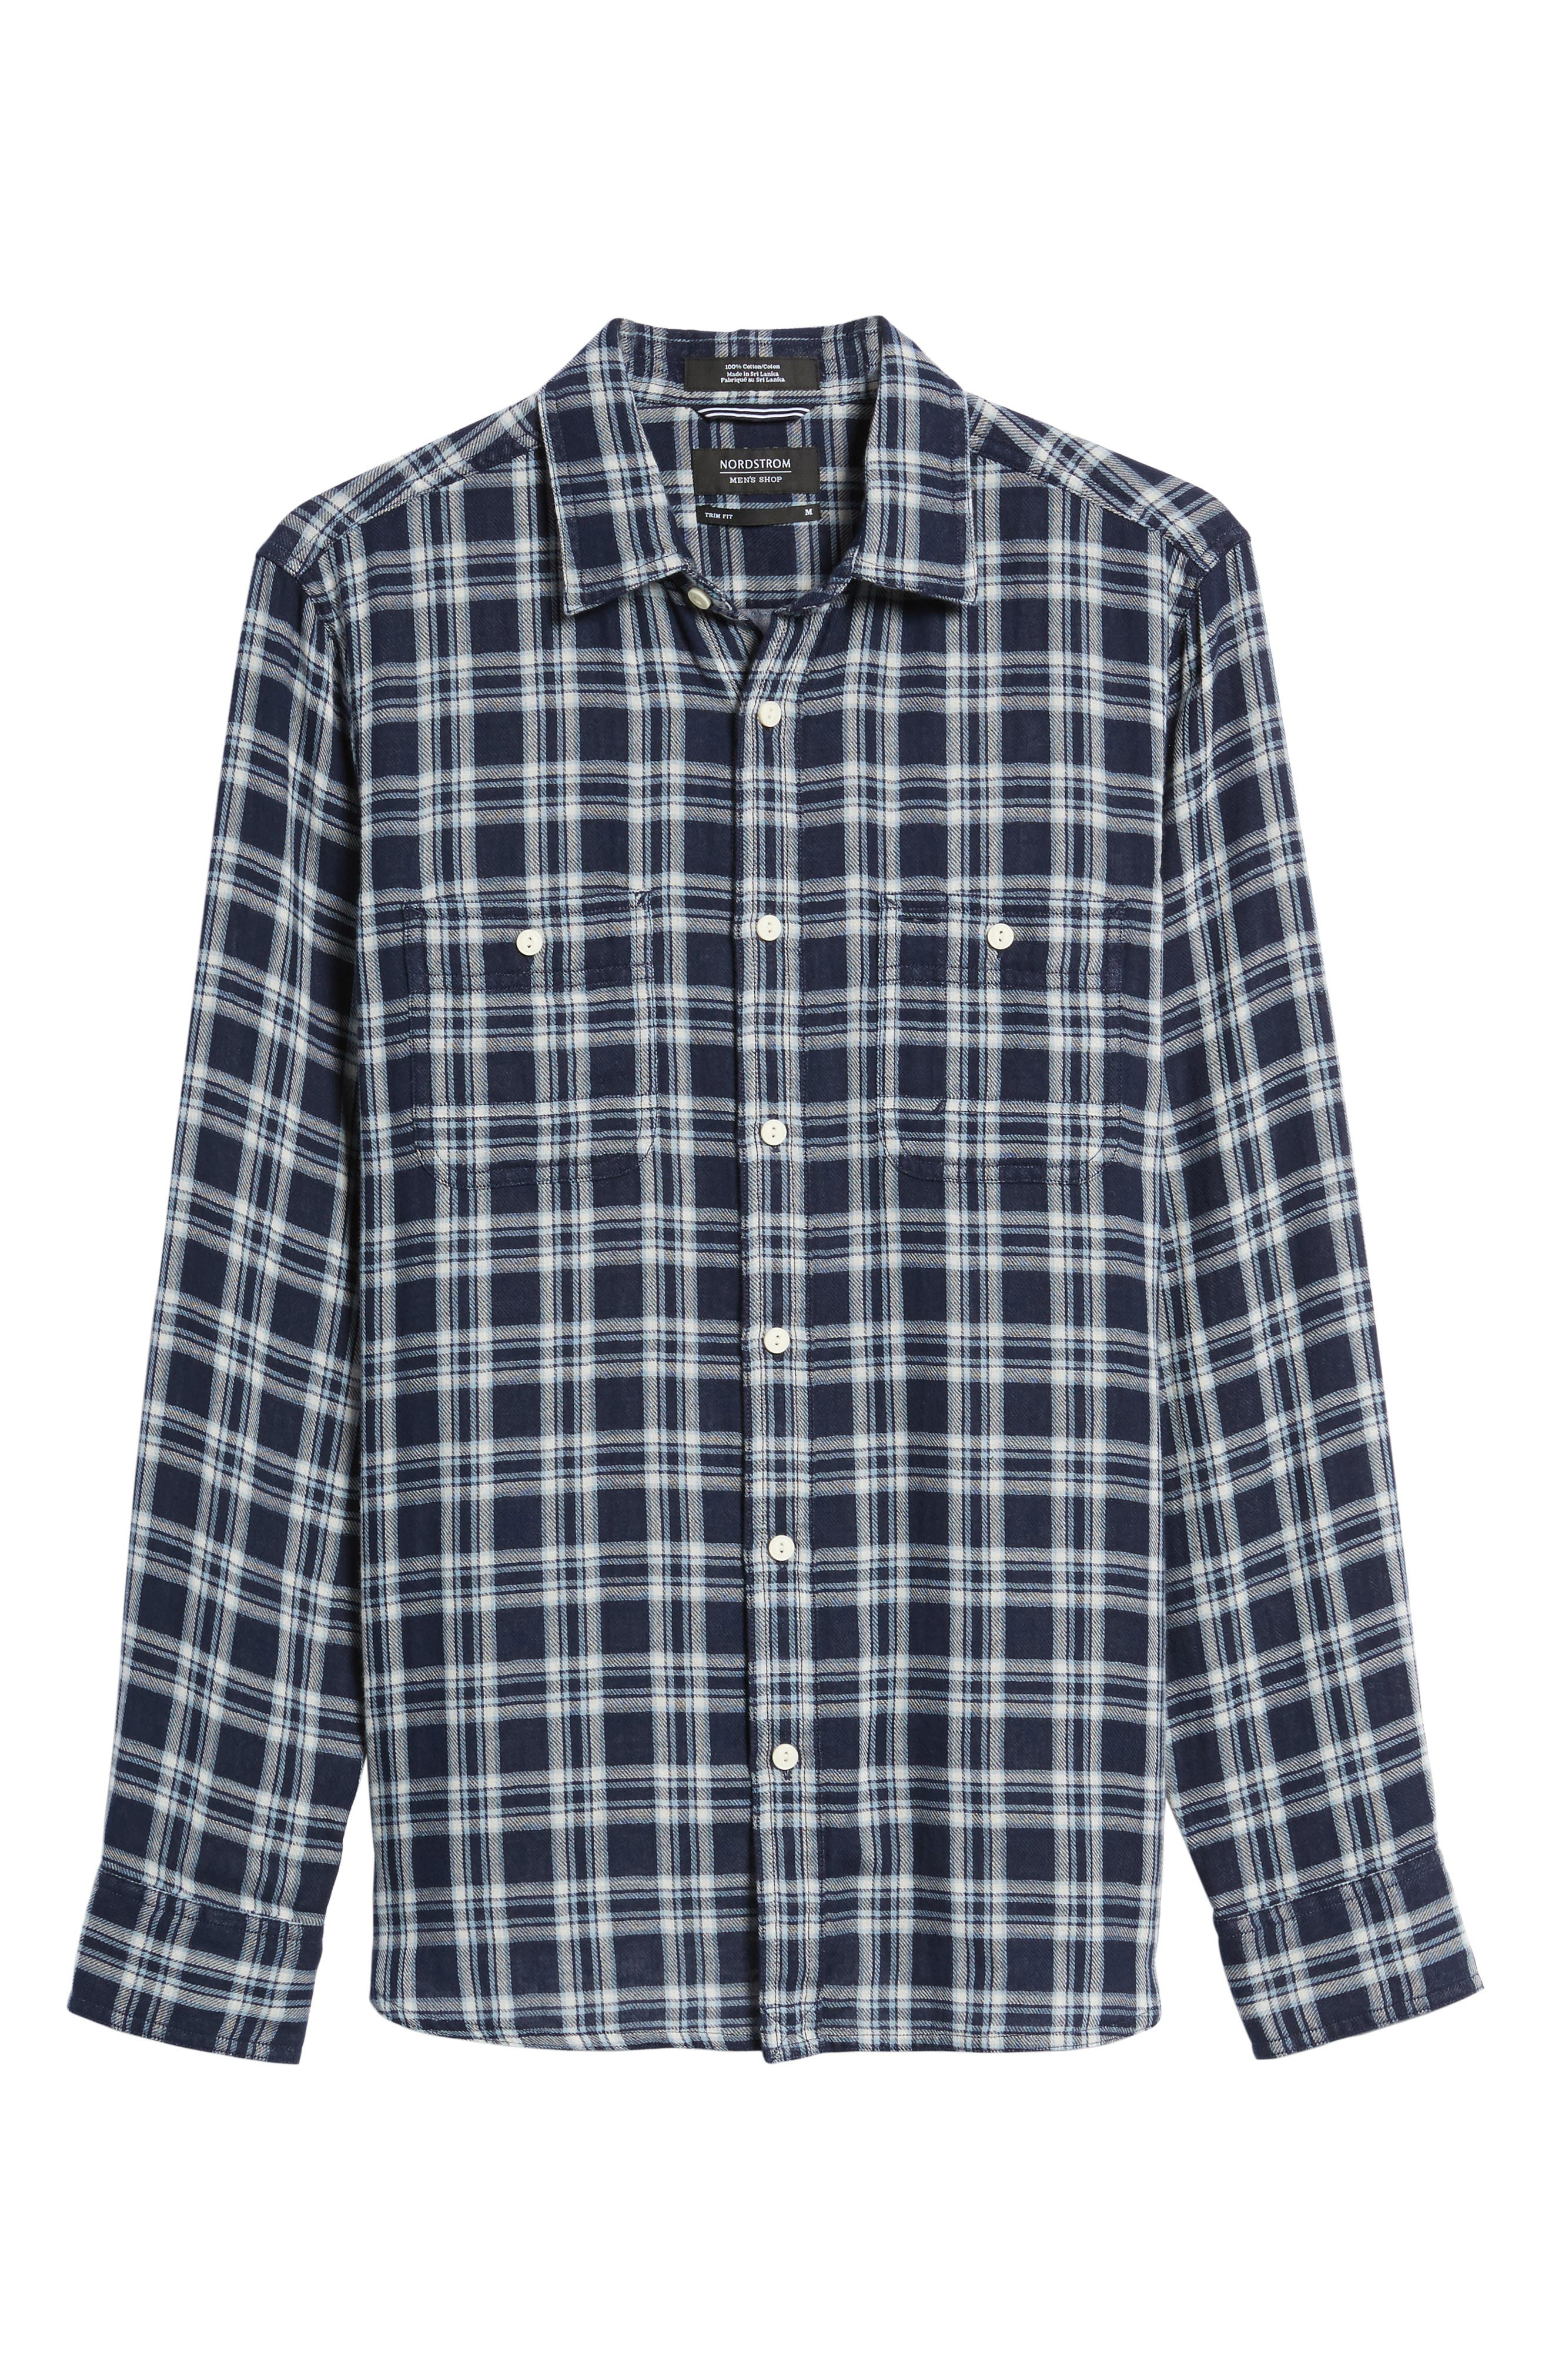 Trim Fit Workwear Duofold Check Sport Shirt,                             Alternate thumbnail 6, color,                             Navy White Chambray Duofold